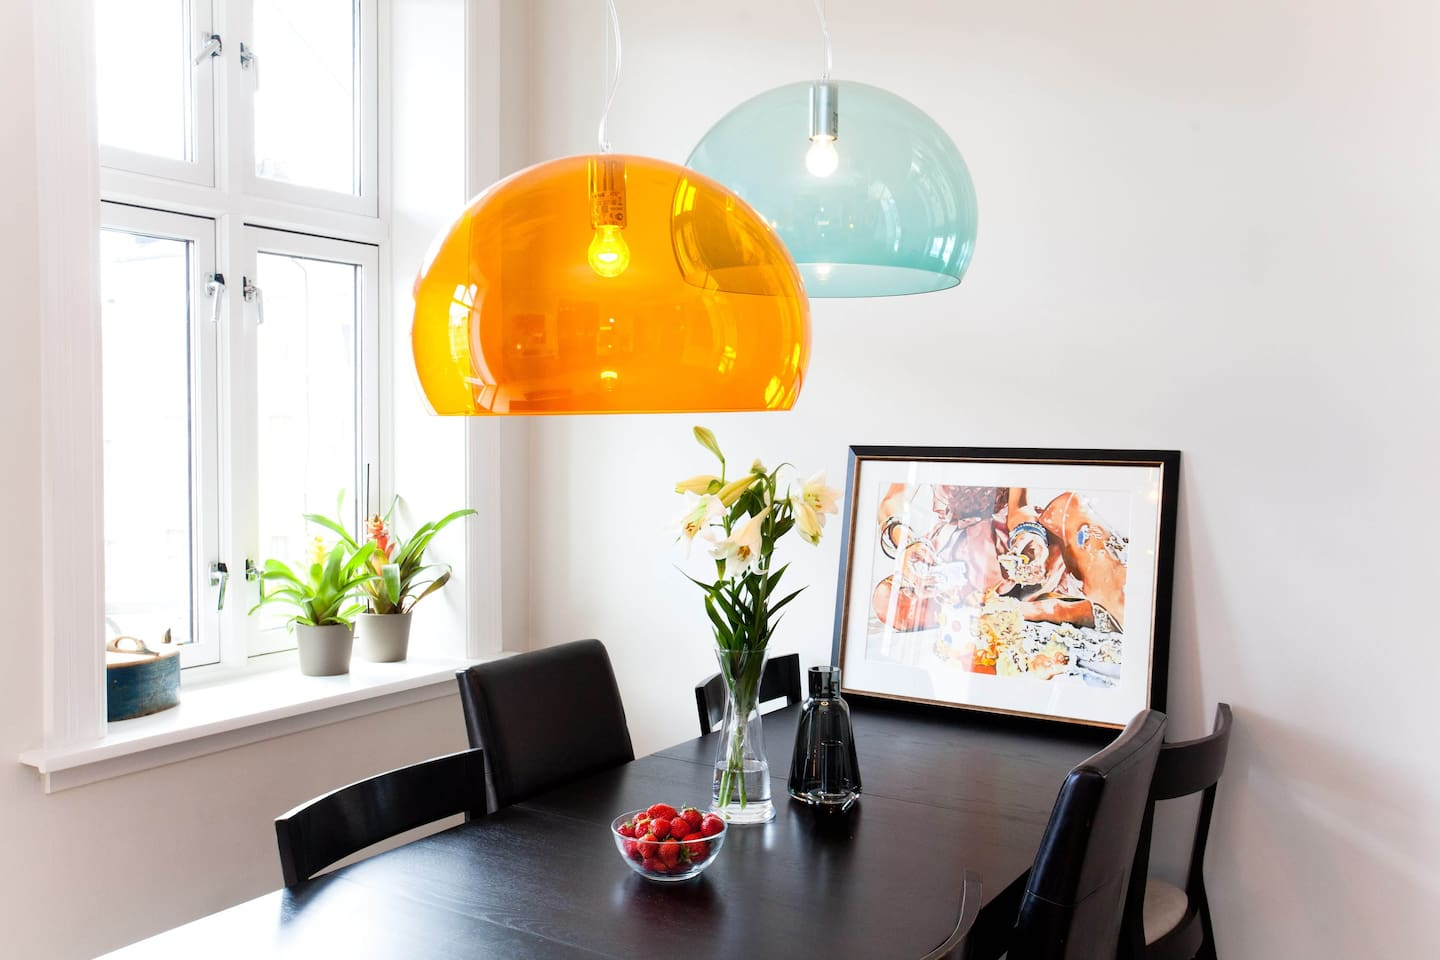 Our bright spacious apartement with two bedrooms, two living rooms, fully equipped kitchen and bathroom in a 19. century building in the heart of Oslo